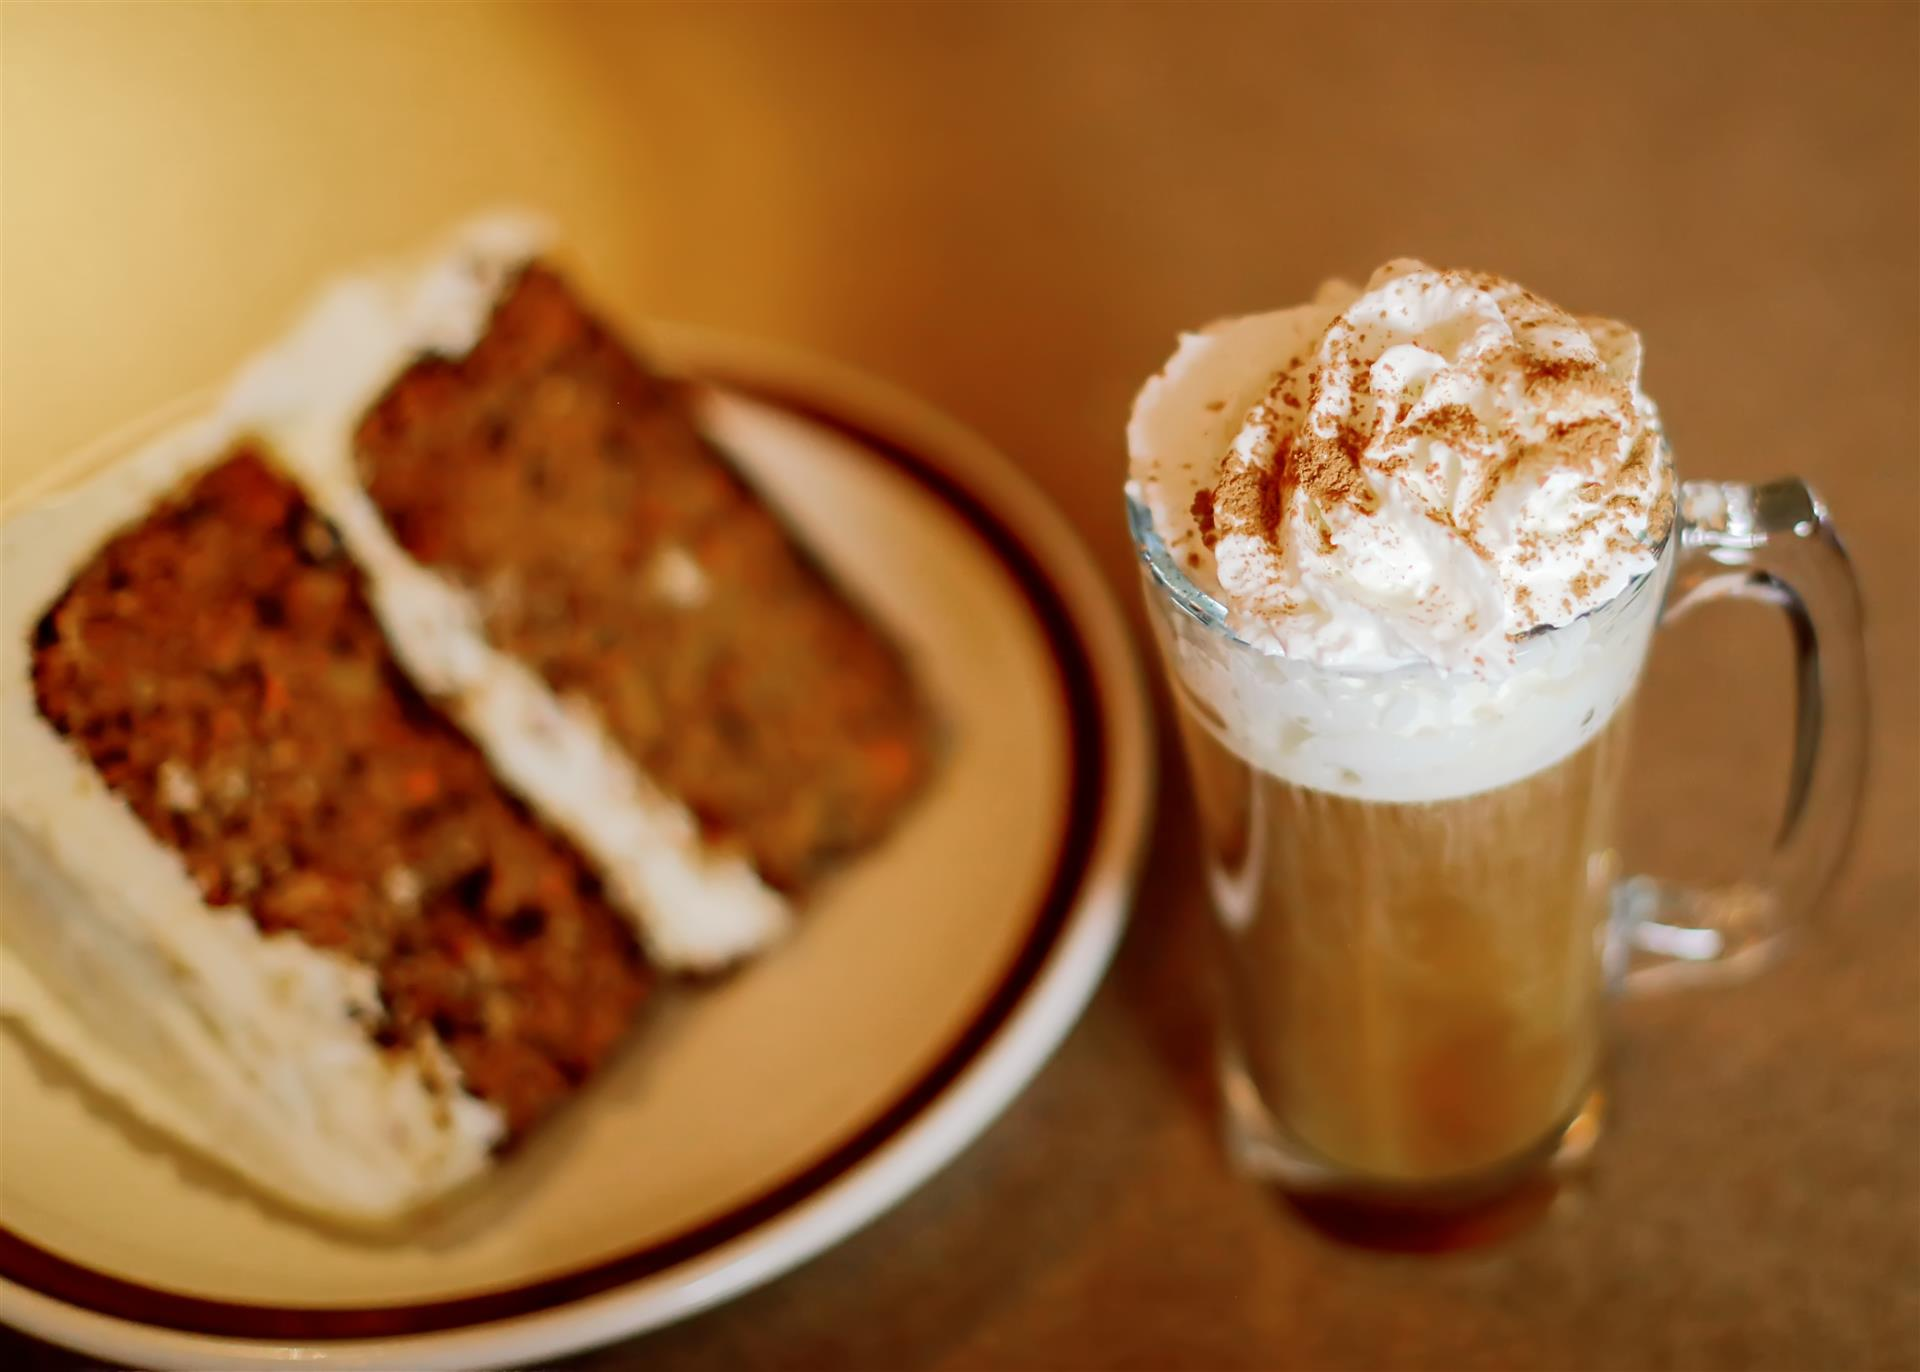 slice of a carrot cake and a coffee with whipped cream and cinnamon on top